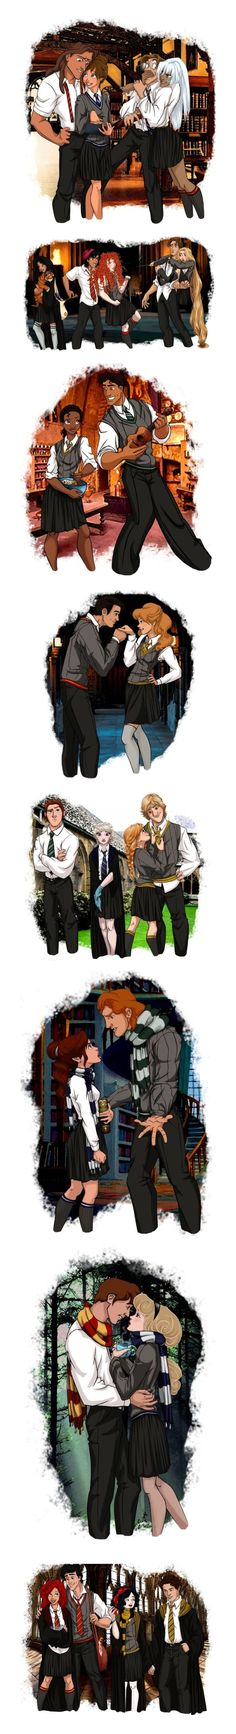 Disney Characters as Hogwarts Students by Raelynn8